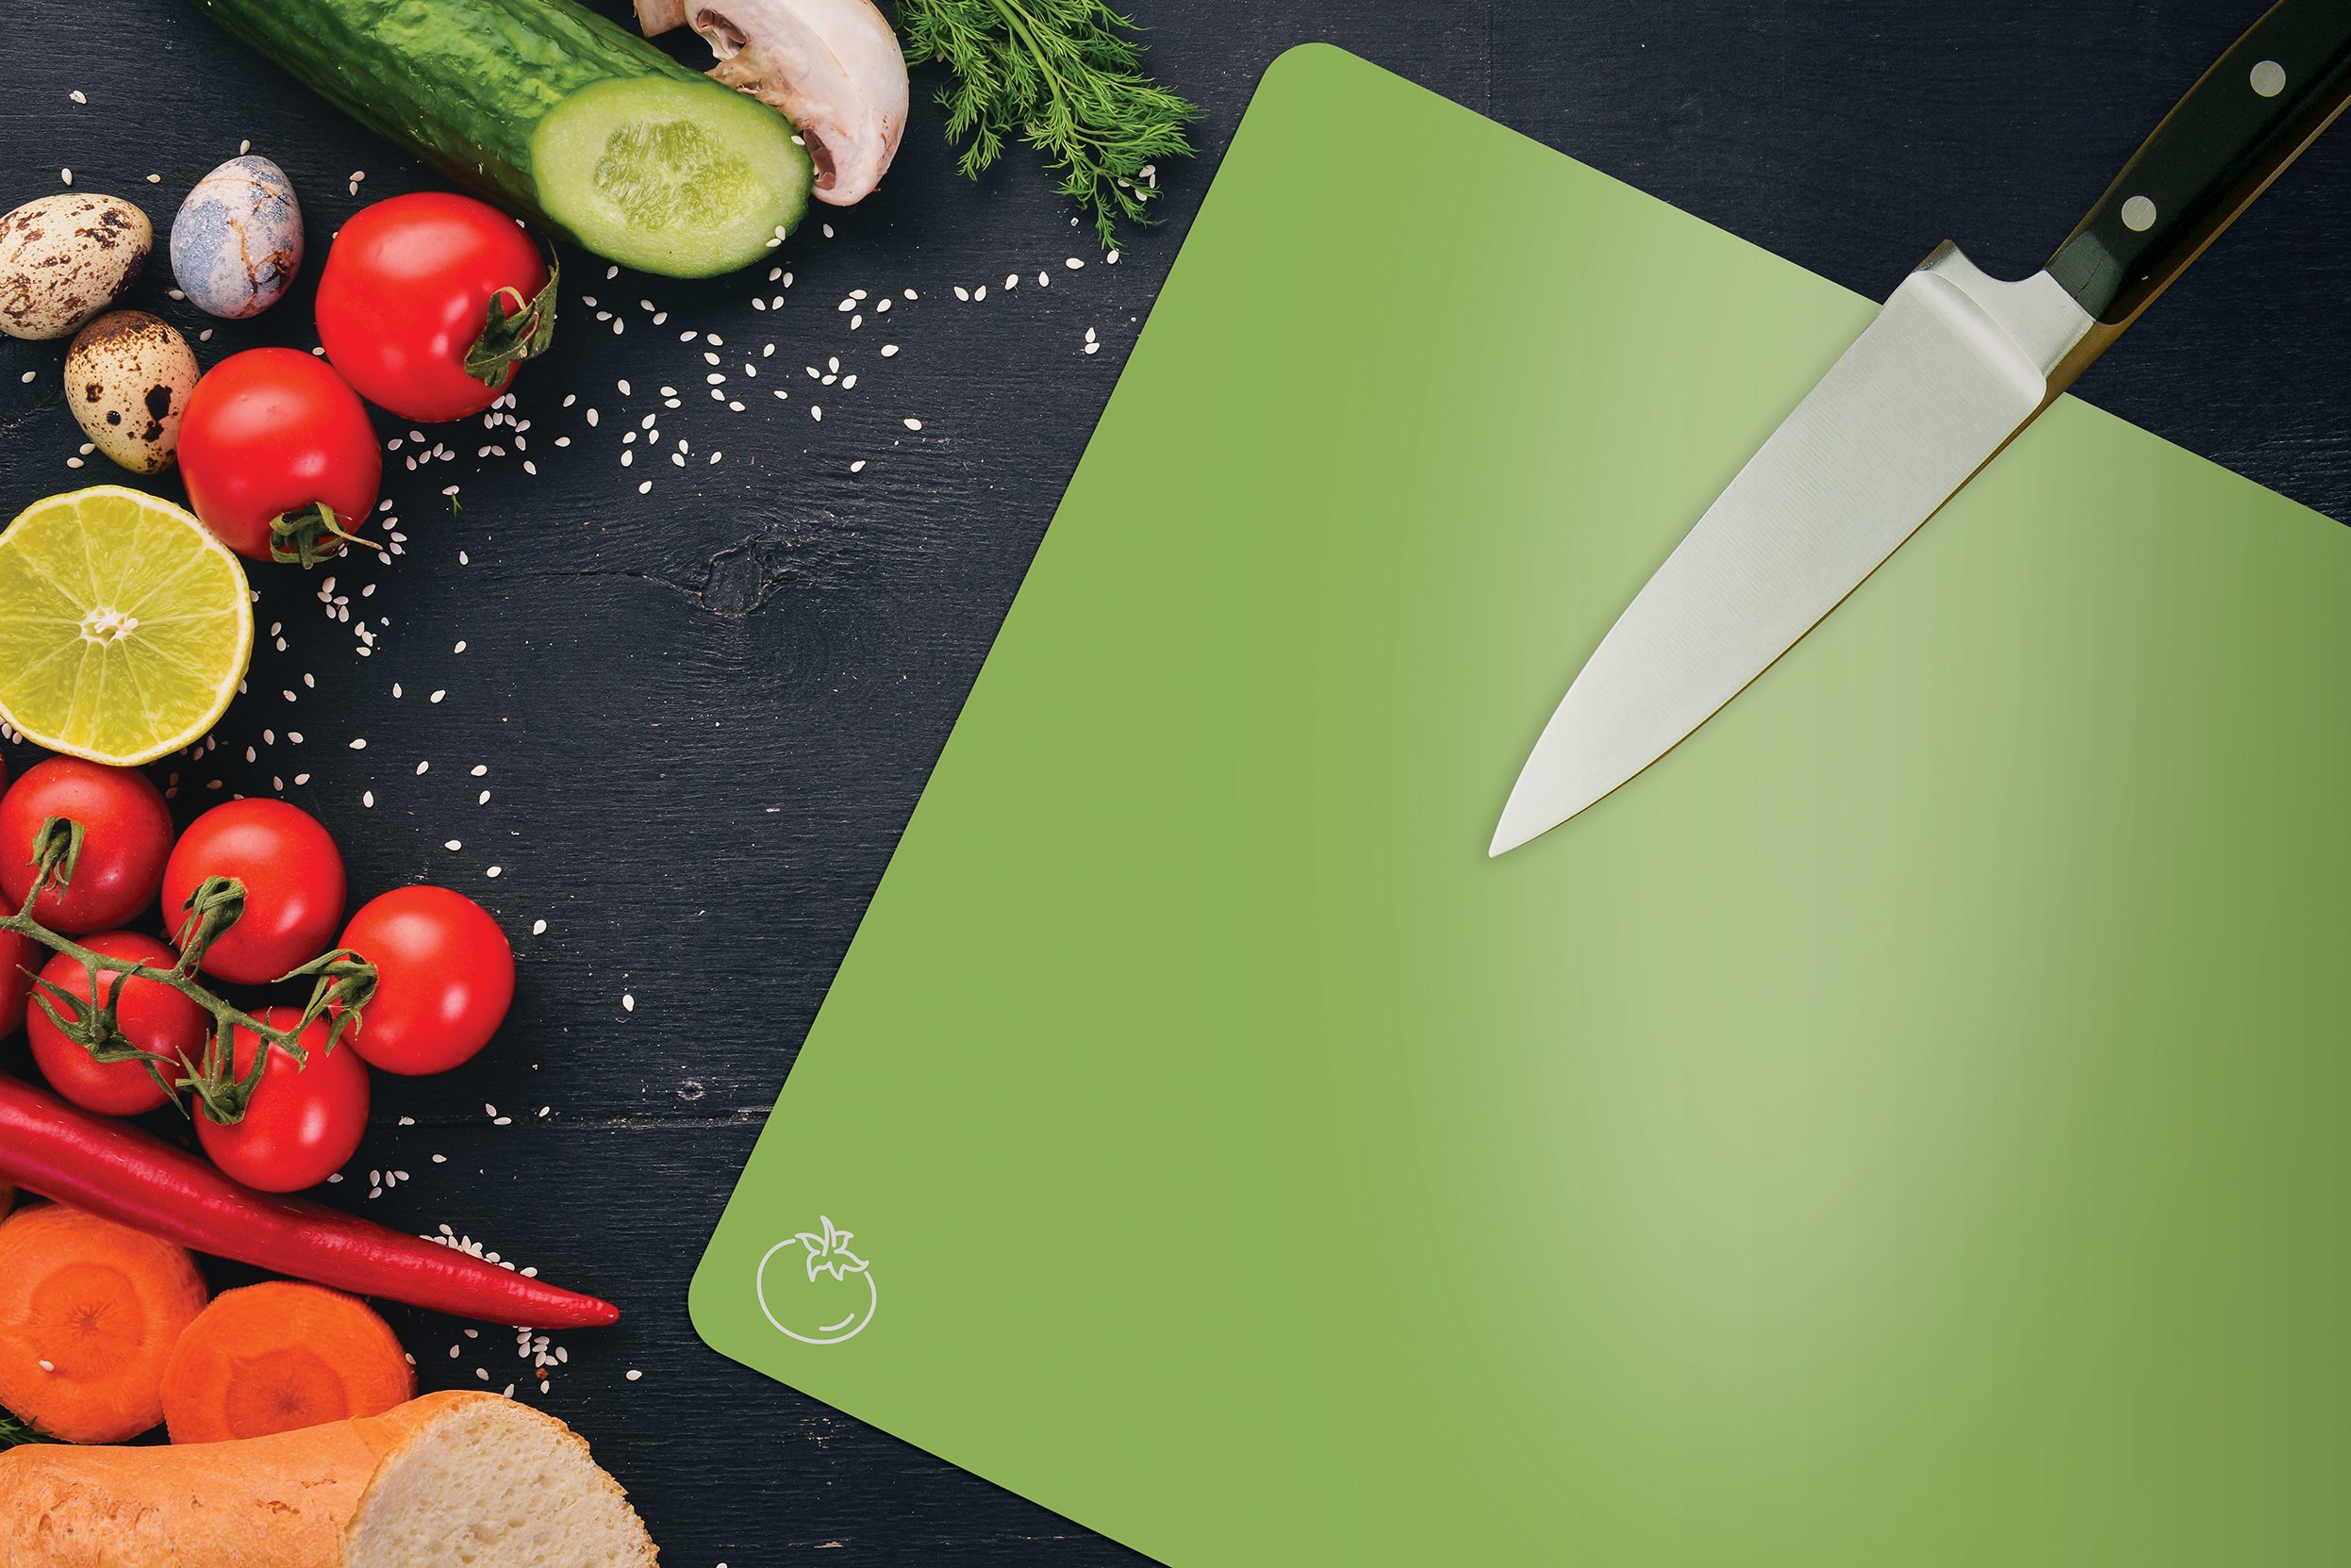 Extra Thick Flexible Plastic Cutting Board Mats, Set of 4, Color Coded with Food Icons, Waffle Back Grip Underside by Better Kitchen Products by Better Kitchen Products (Image #2)